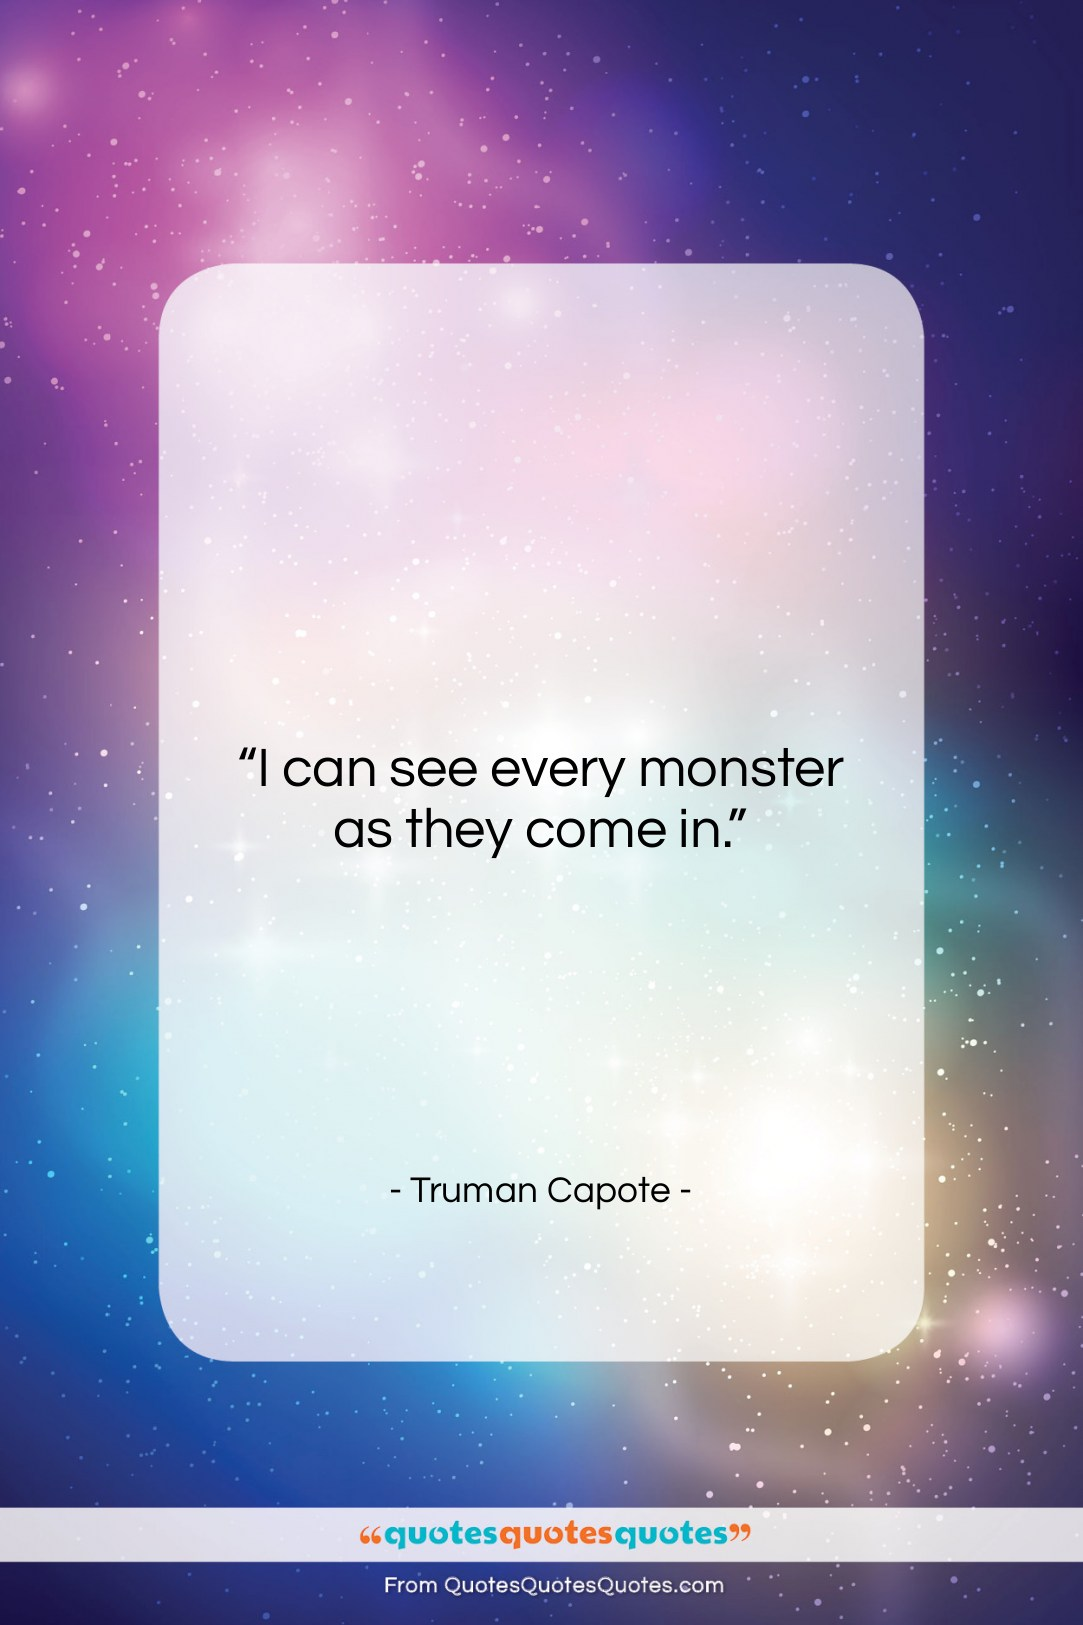 """Truman Capote quote: """"I can see every monster as they…""""- at QuotesQuotesQuotes.com"""